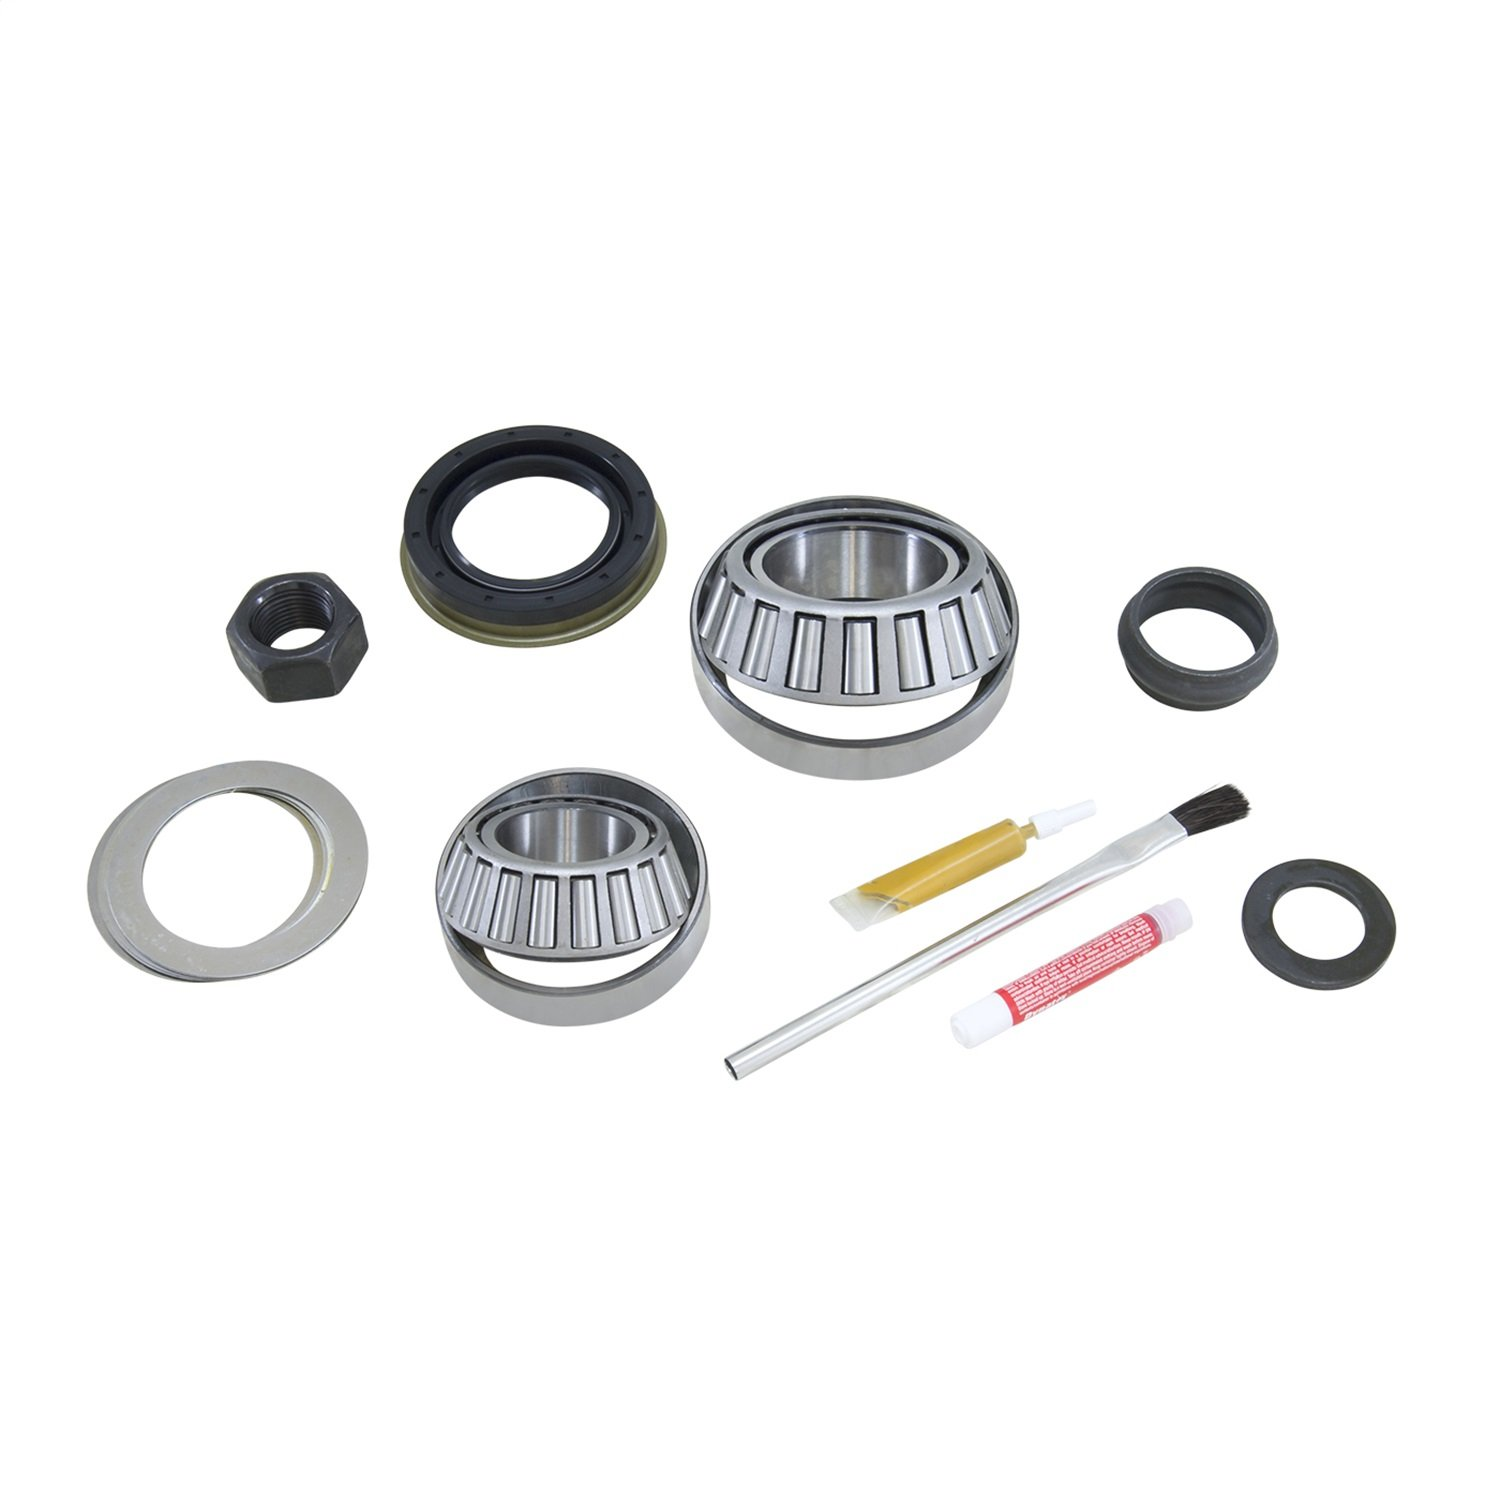 USA Standard Gear (ZPKC9.25-F) Pinion Installation Kit for Chrysler 9.25'' Front Differential